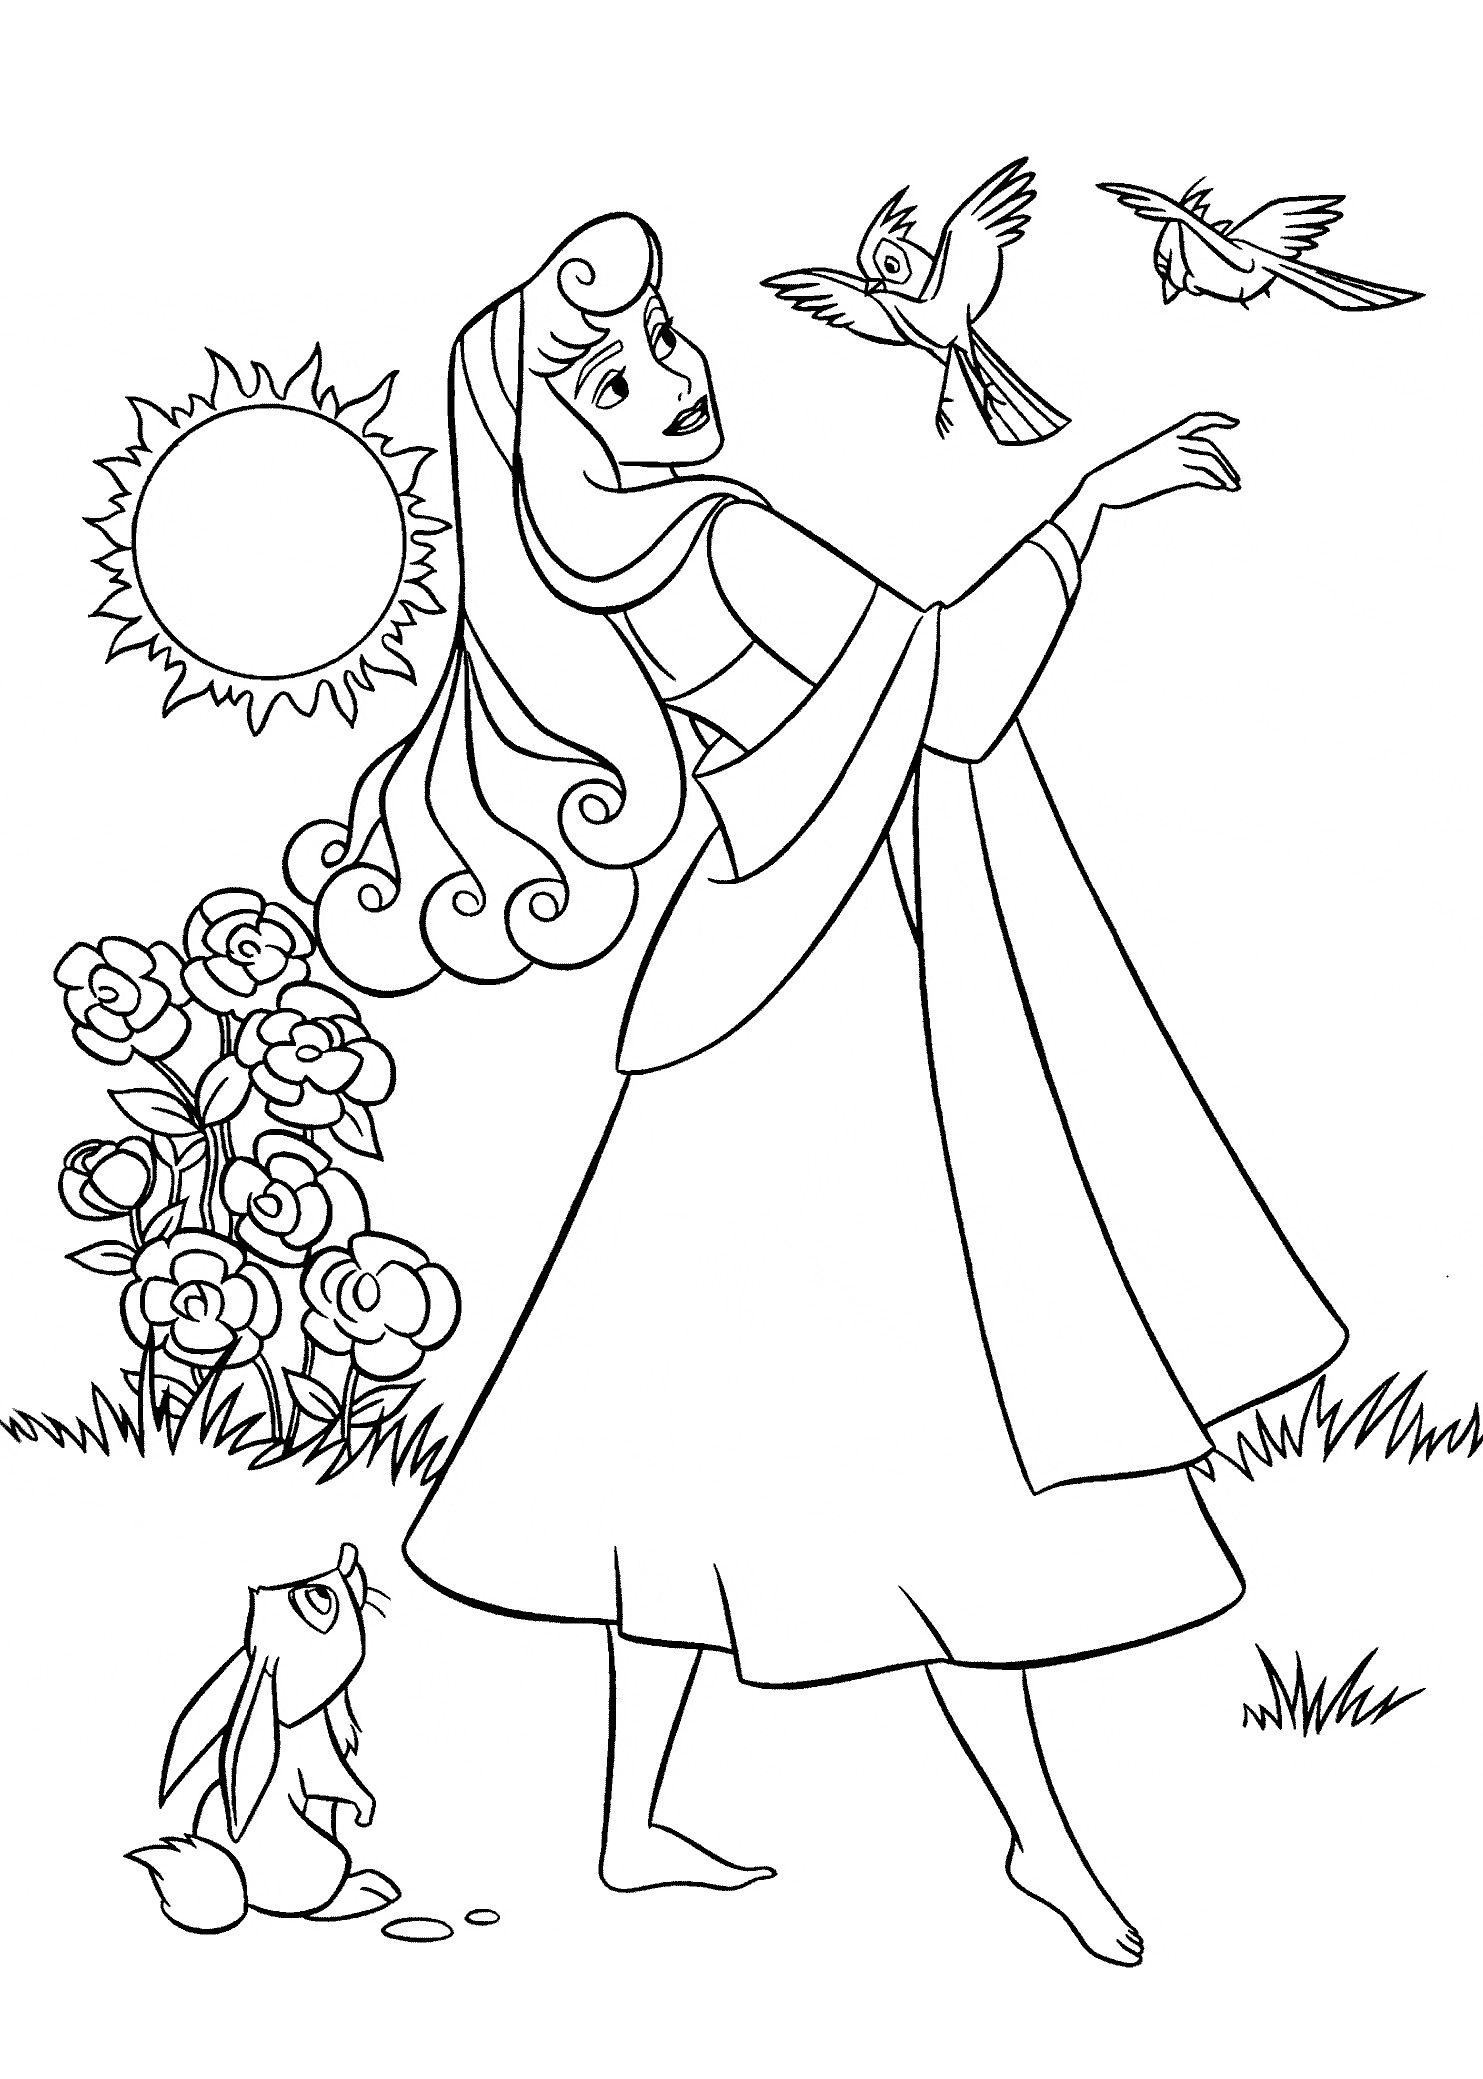 Princess Aurora Coloring Page From The Thousands Of Photographs Online C Disney Princess Coloring Pages Sleeping Beauty Coloring Pages Cartoon Coloring Pages